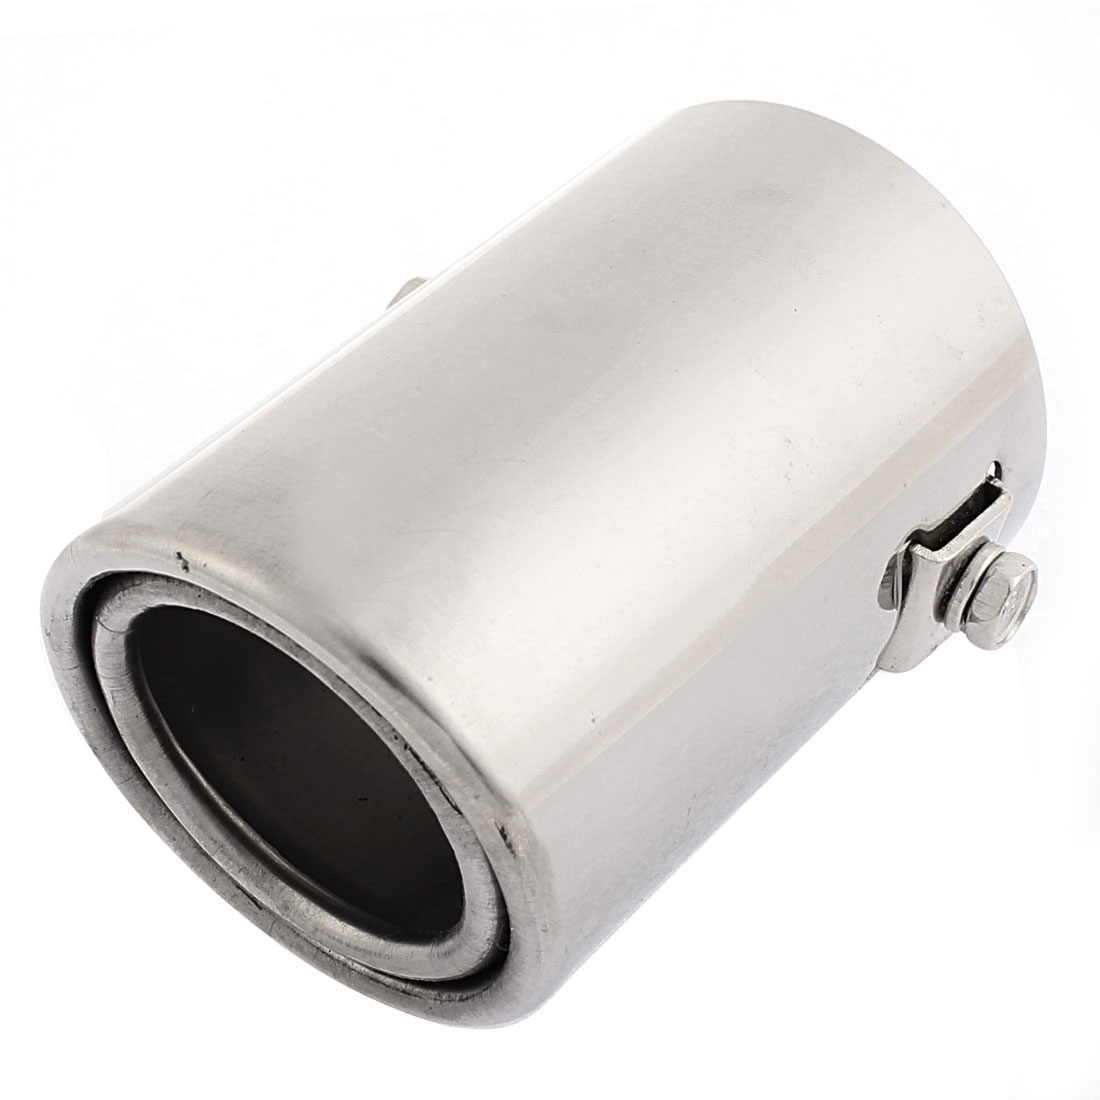 Universal Auto Car Oval Stainless Steel Exhaust Tail Muffler Tip Pipe